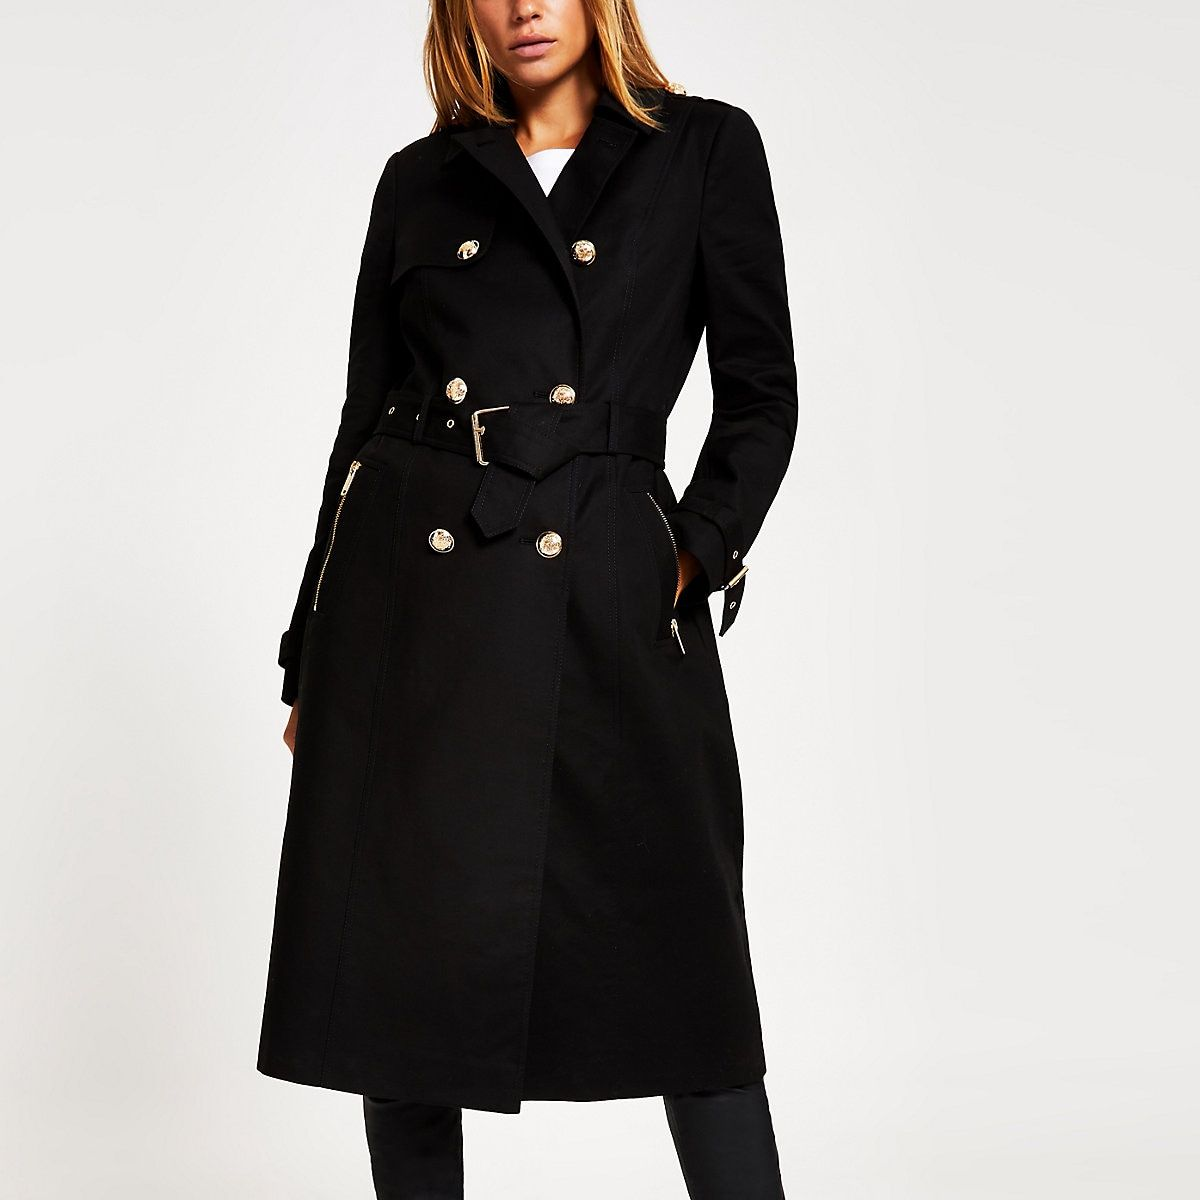 Black double breasted belted trench coat | Belted trench